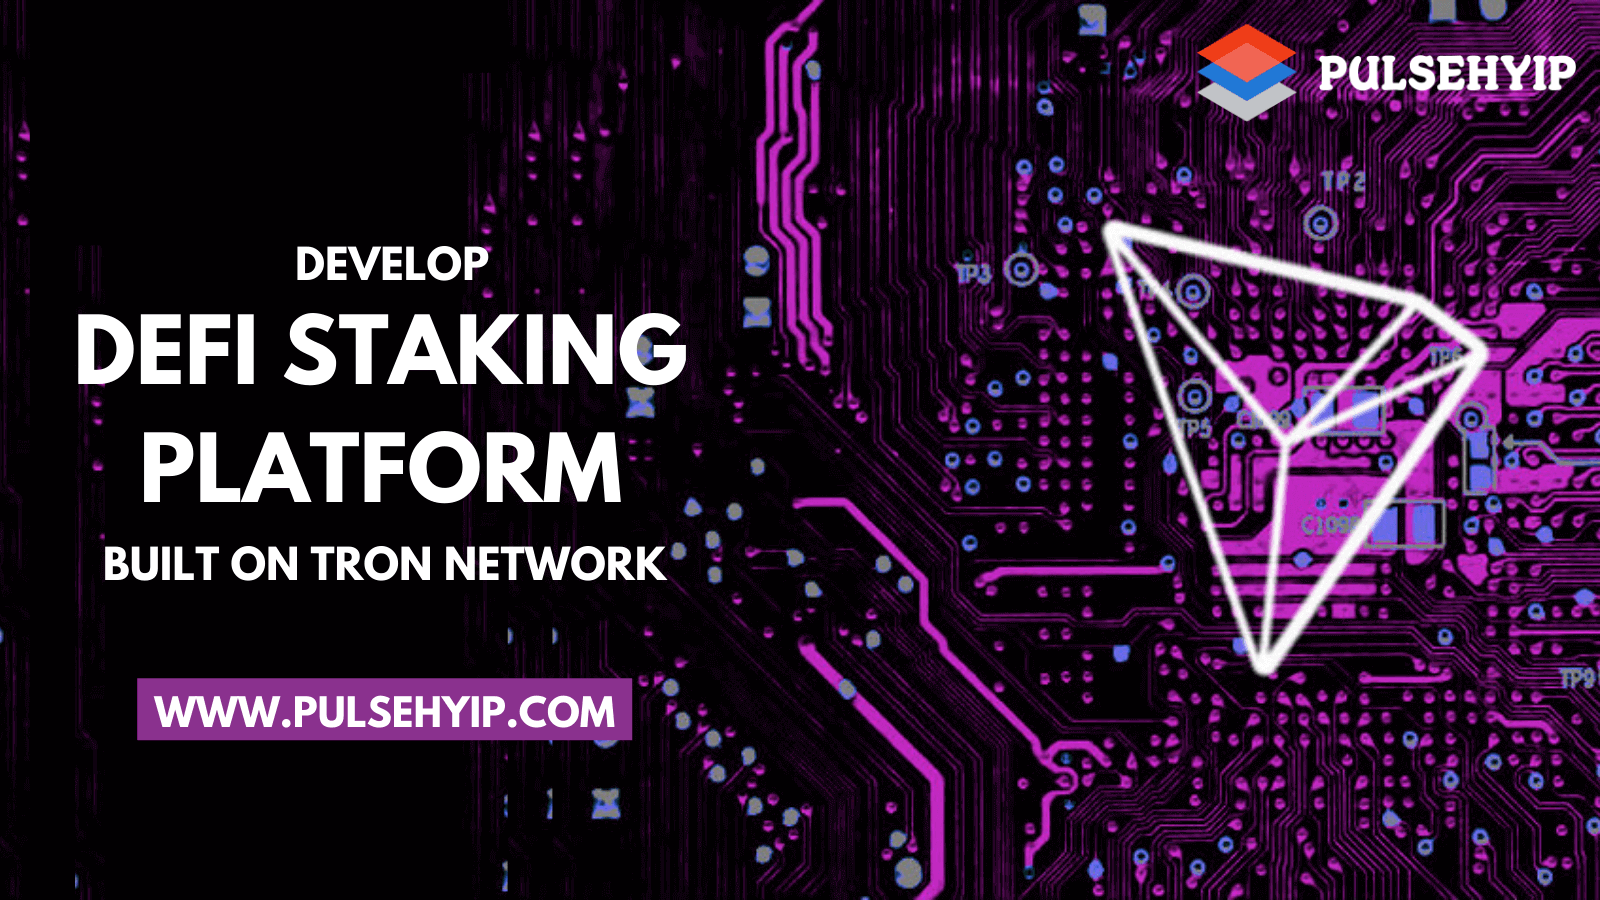 How to Develop DeFi Staking Platform built on Tron Network?